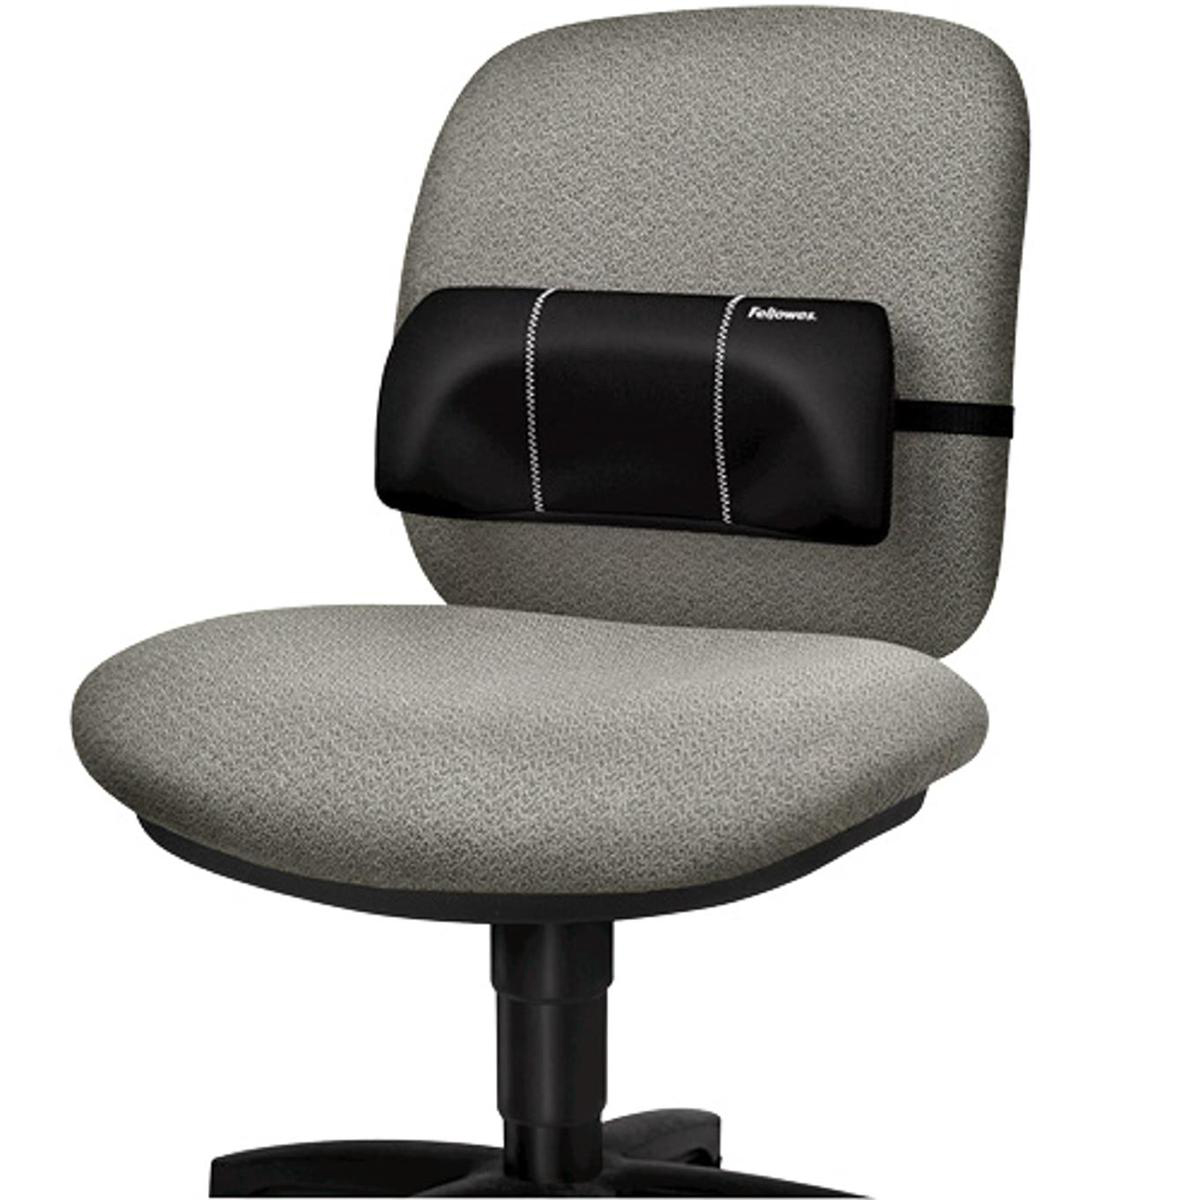 Chair Fellowes Portable Lumbar Support Soft-brushed Cover Adjustable-straps Ref 8042101 REDEMPTION Apr-Jun20